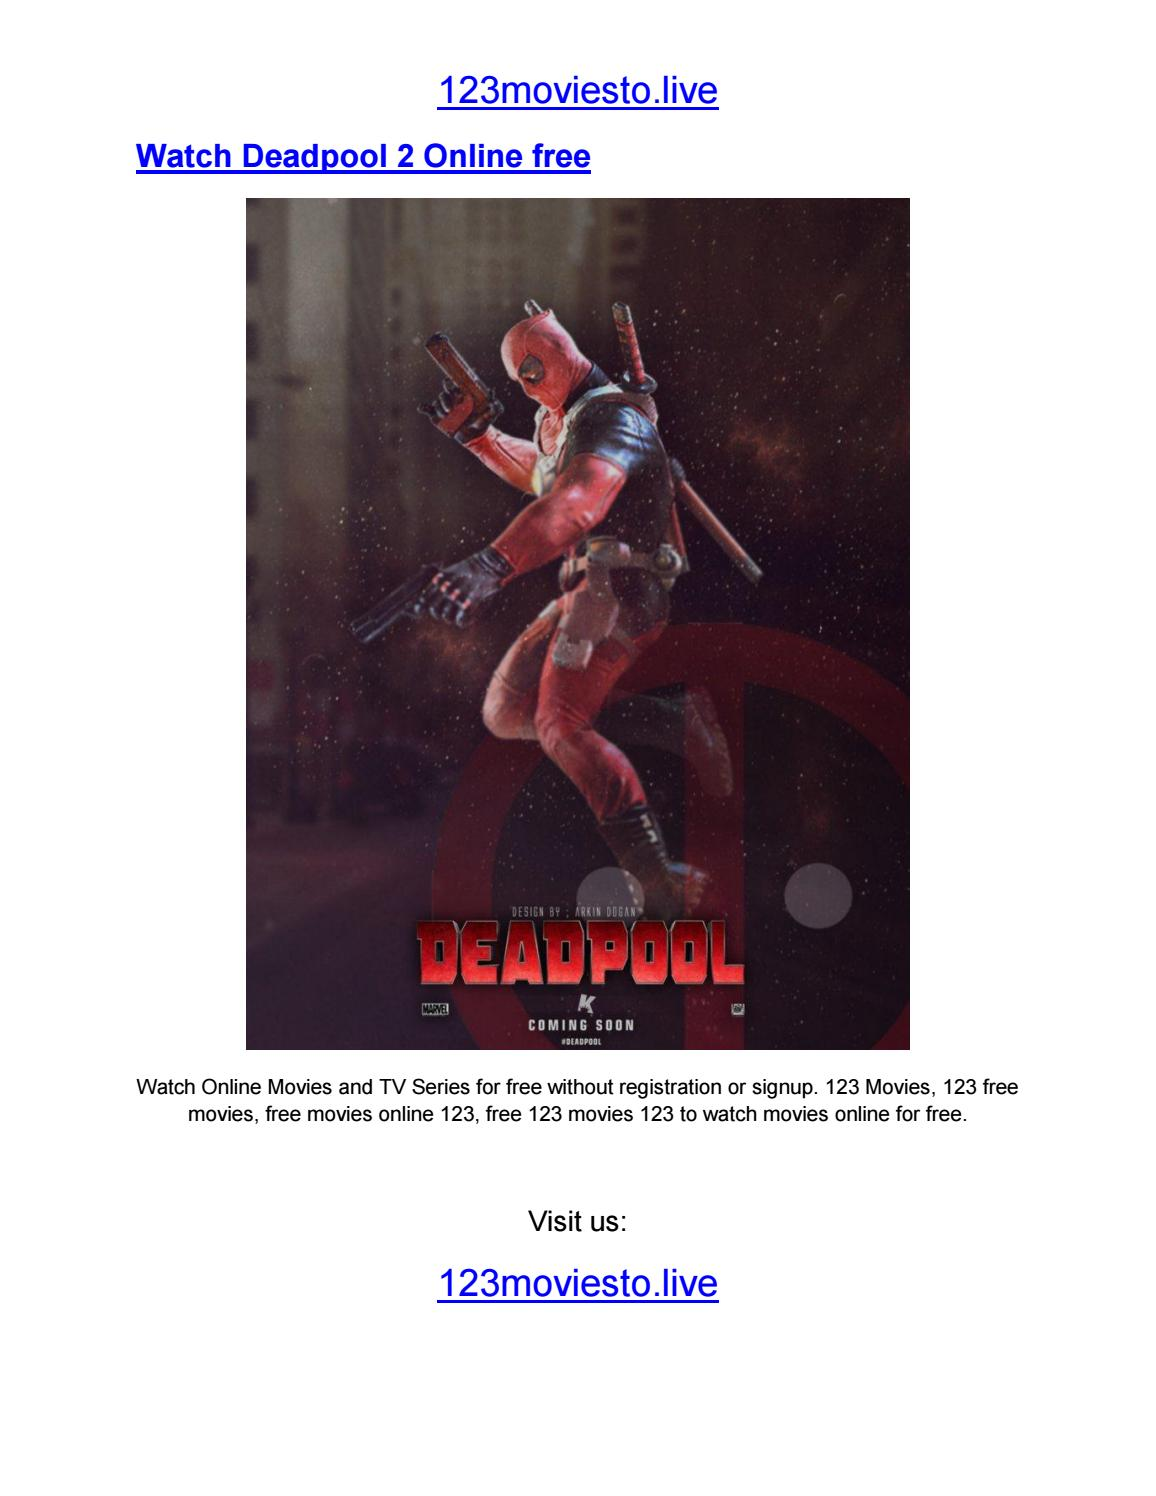 Watch Deadpool 2 Online Free By 123 Movies Issuu